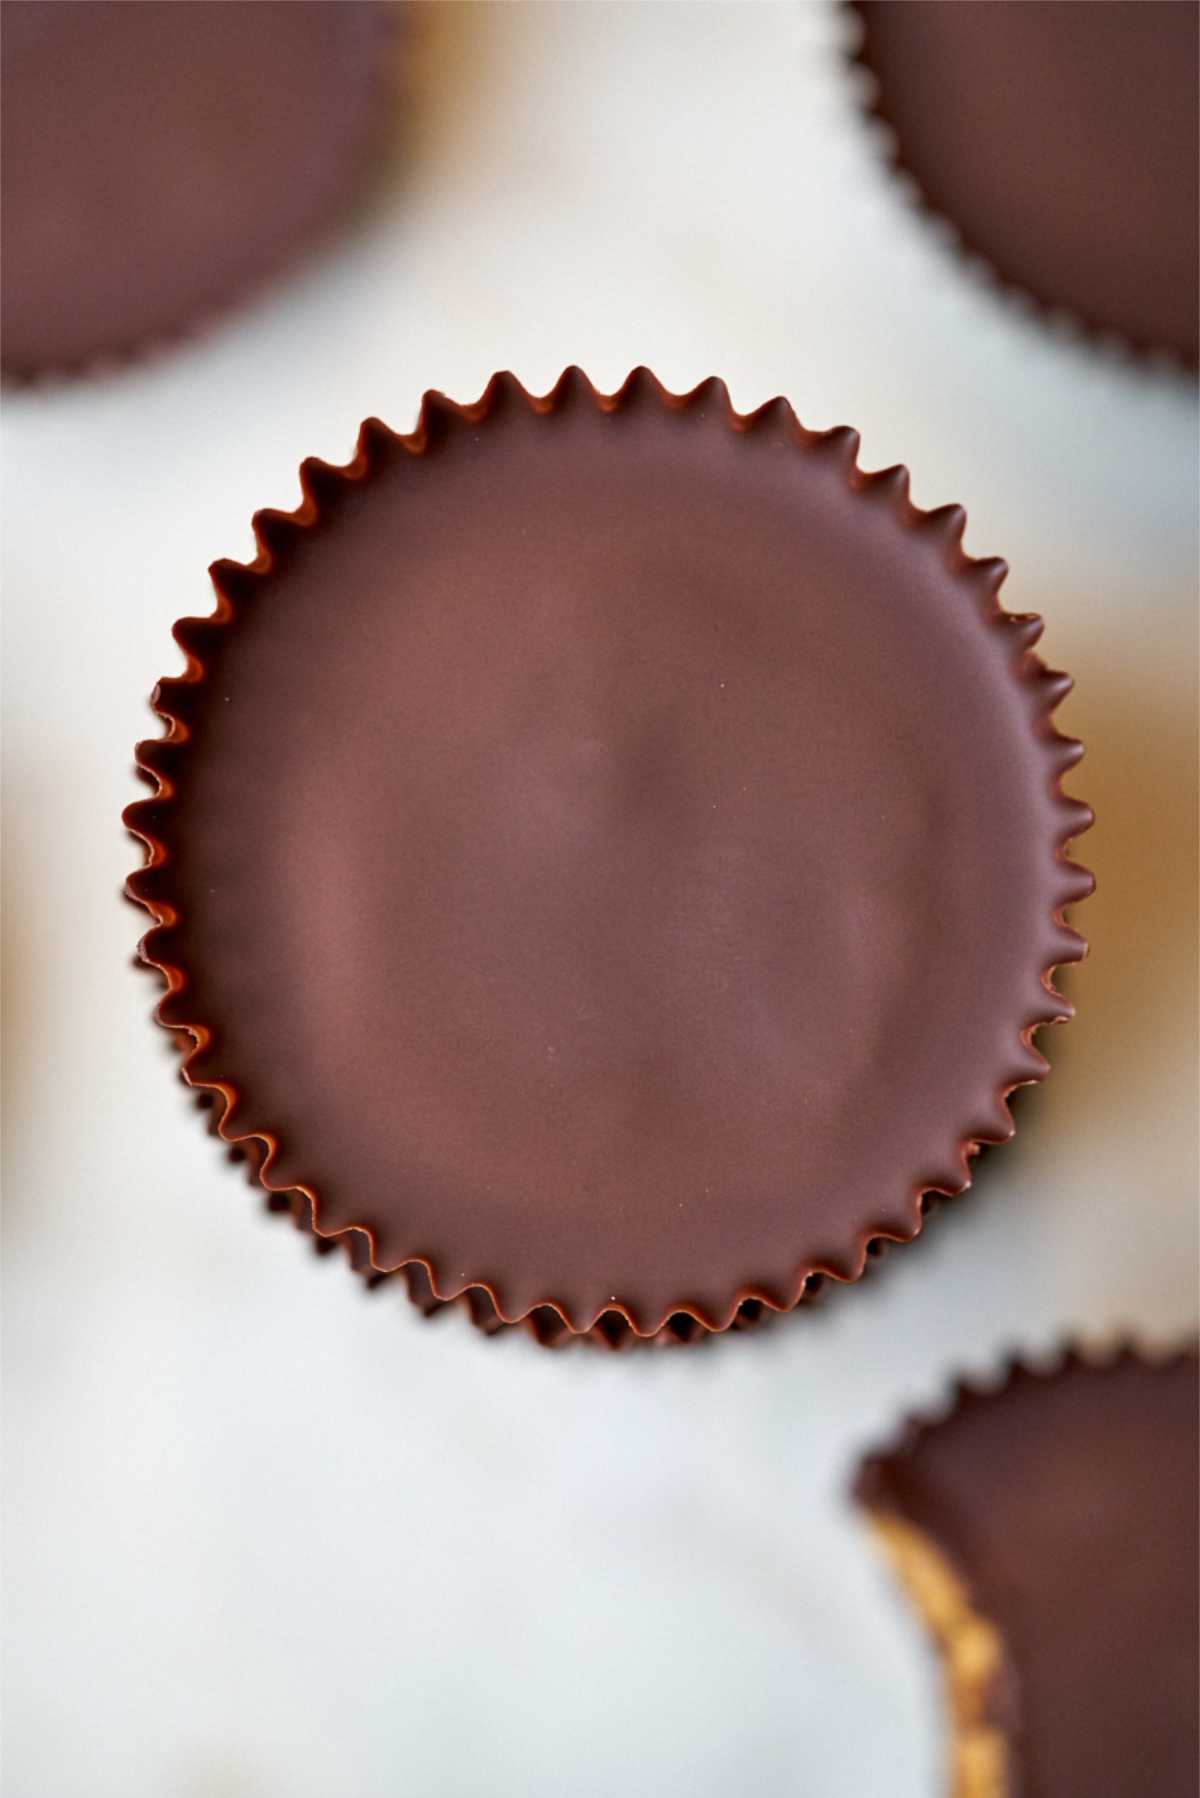 Close up of one peanut butter cup.